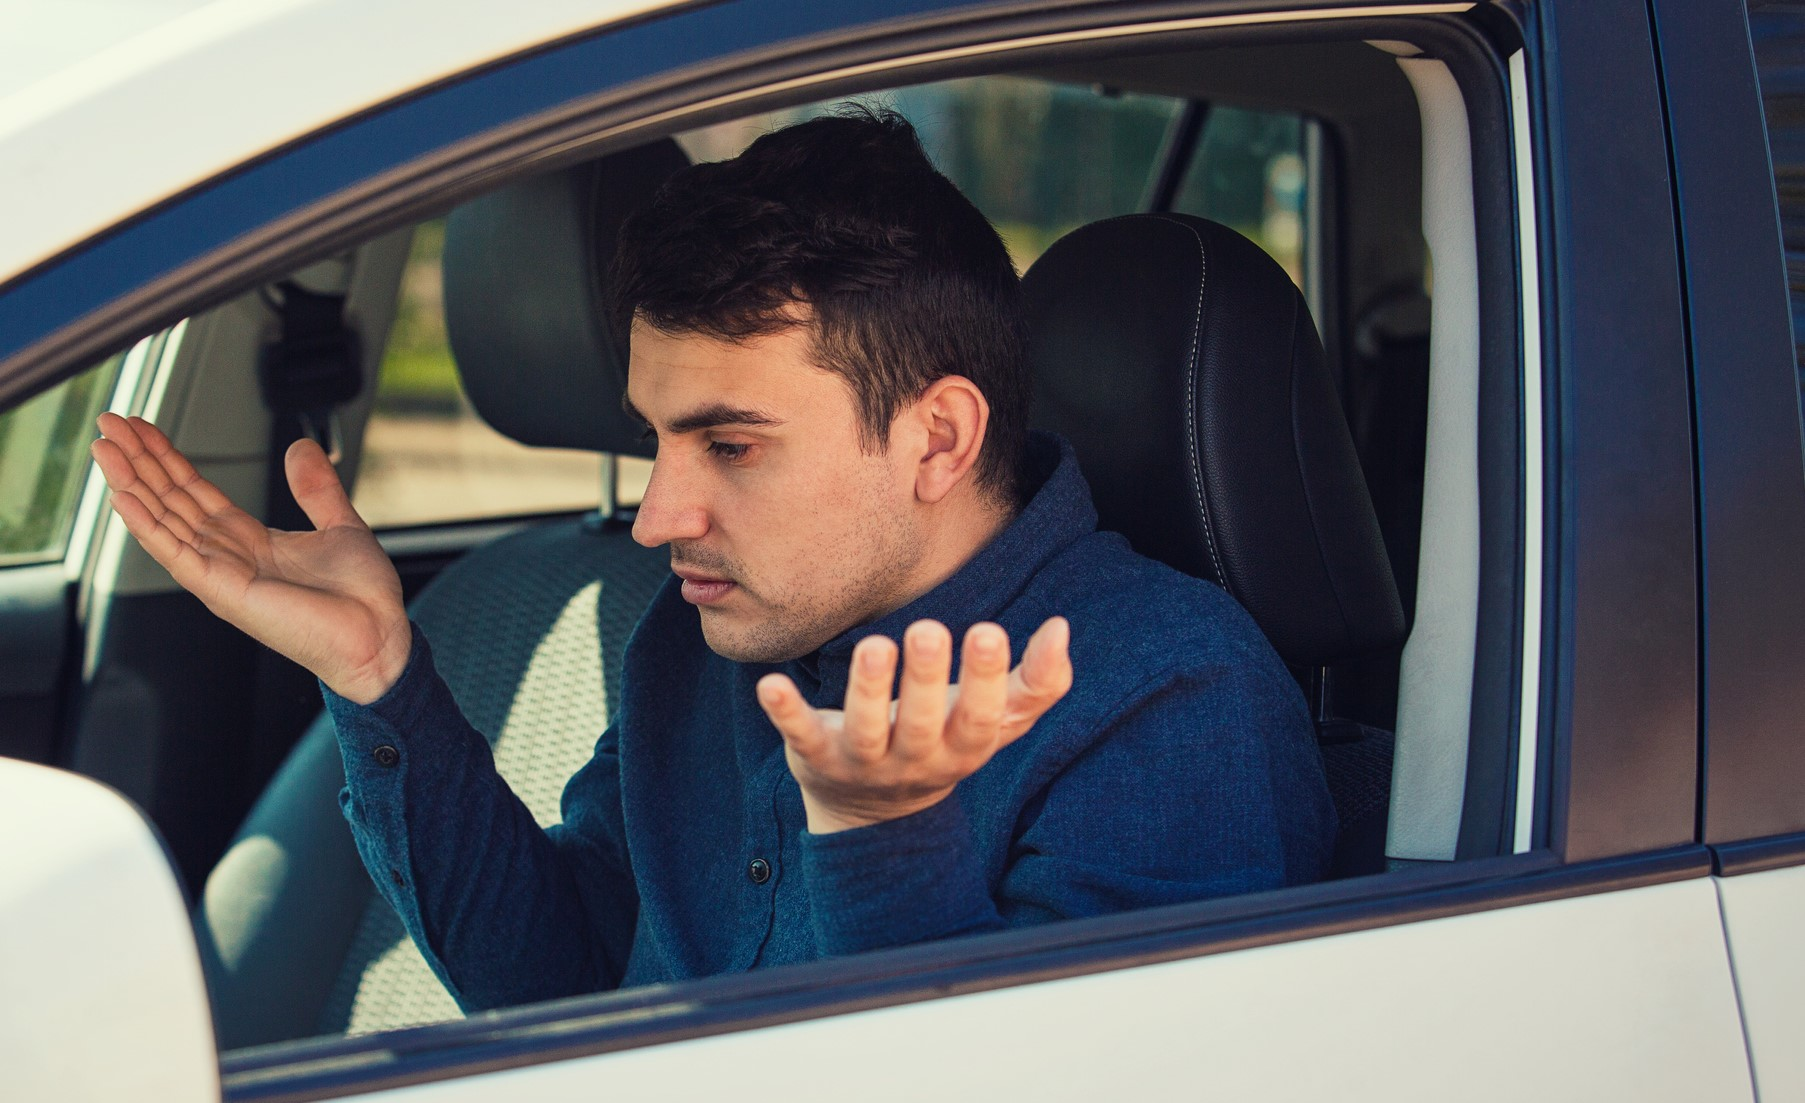 Frustrated man in driver's seat of car